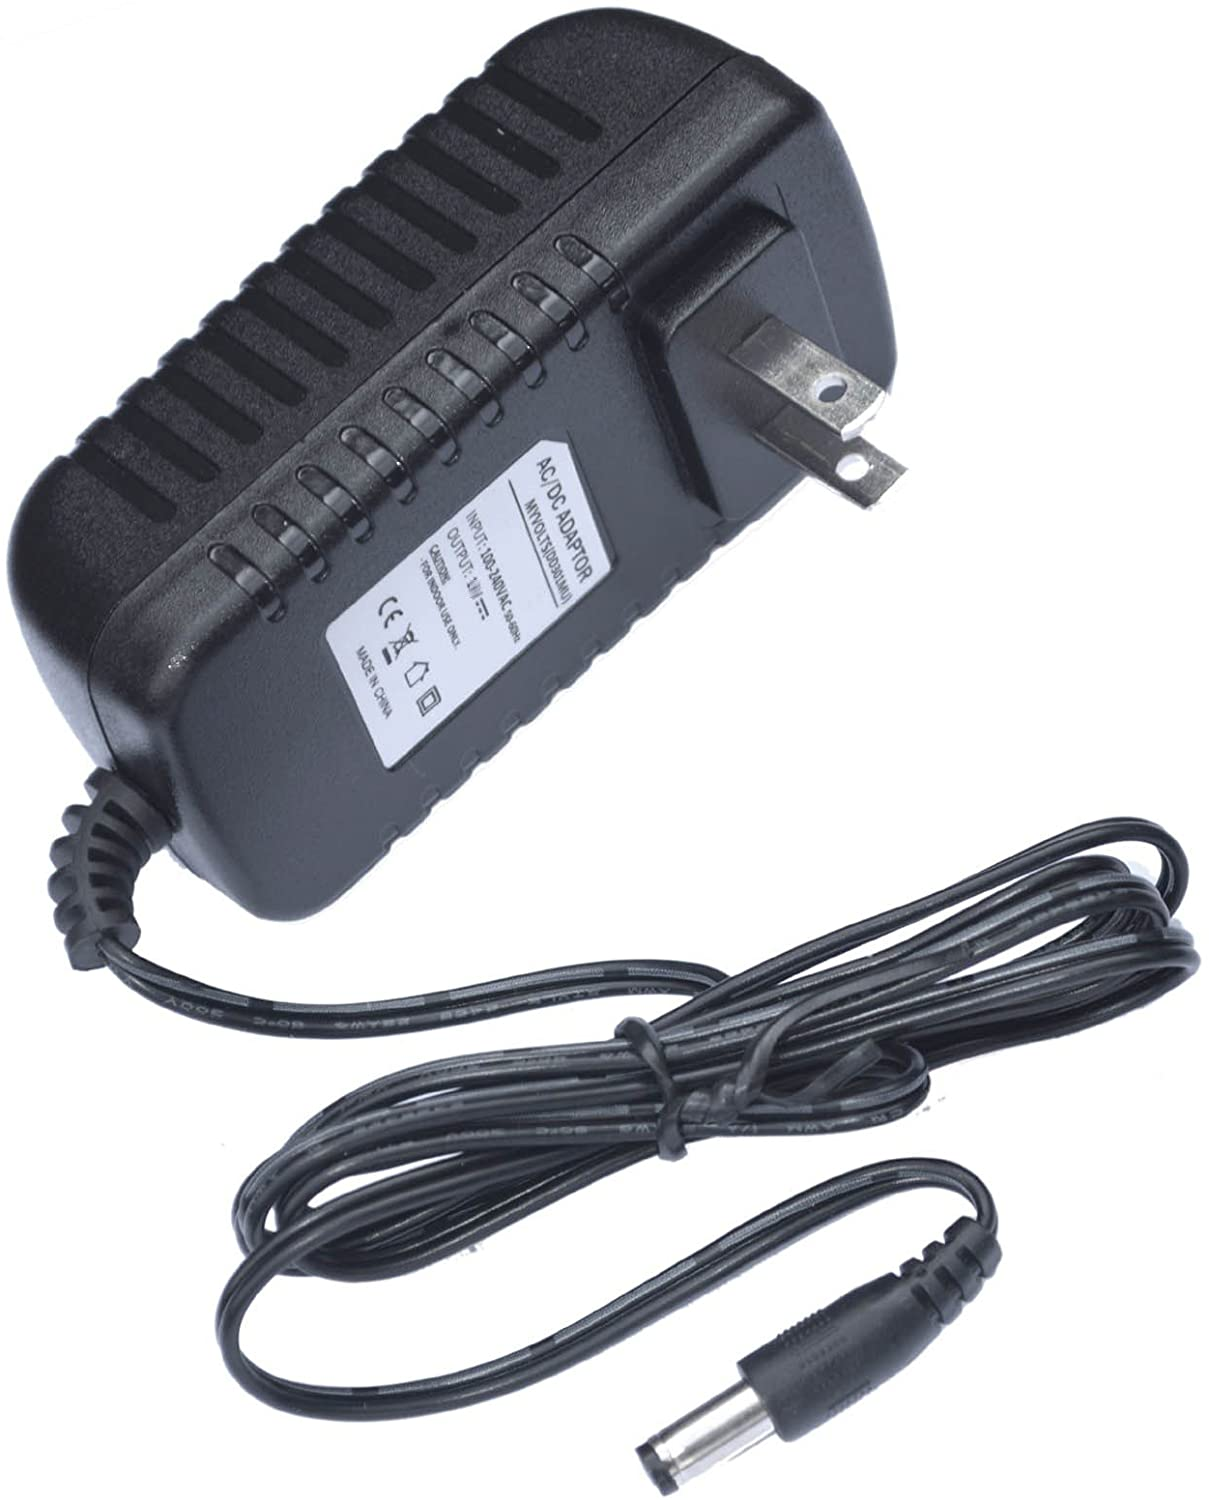 MyVolts 12V Power Supply Adaptor Compatible with Korg X-50 Keyboard - US Plug